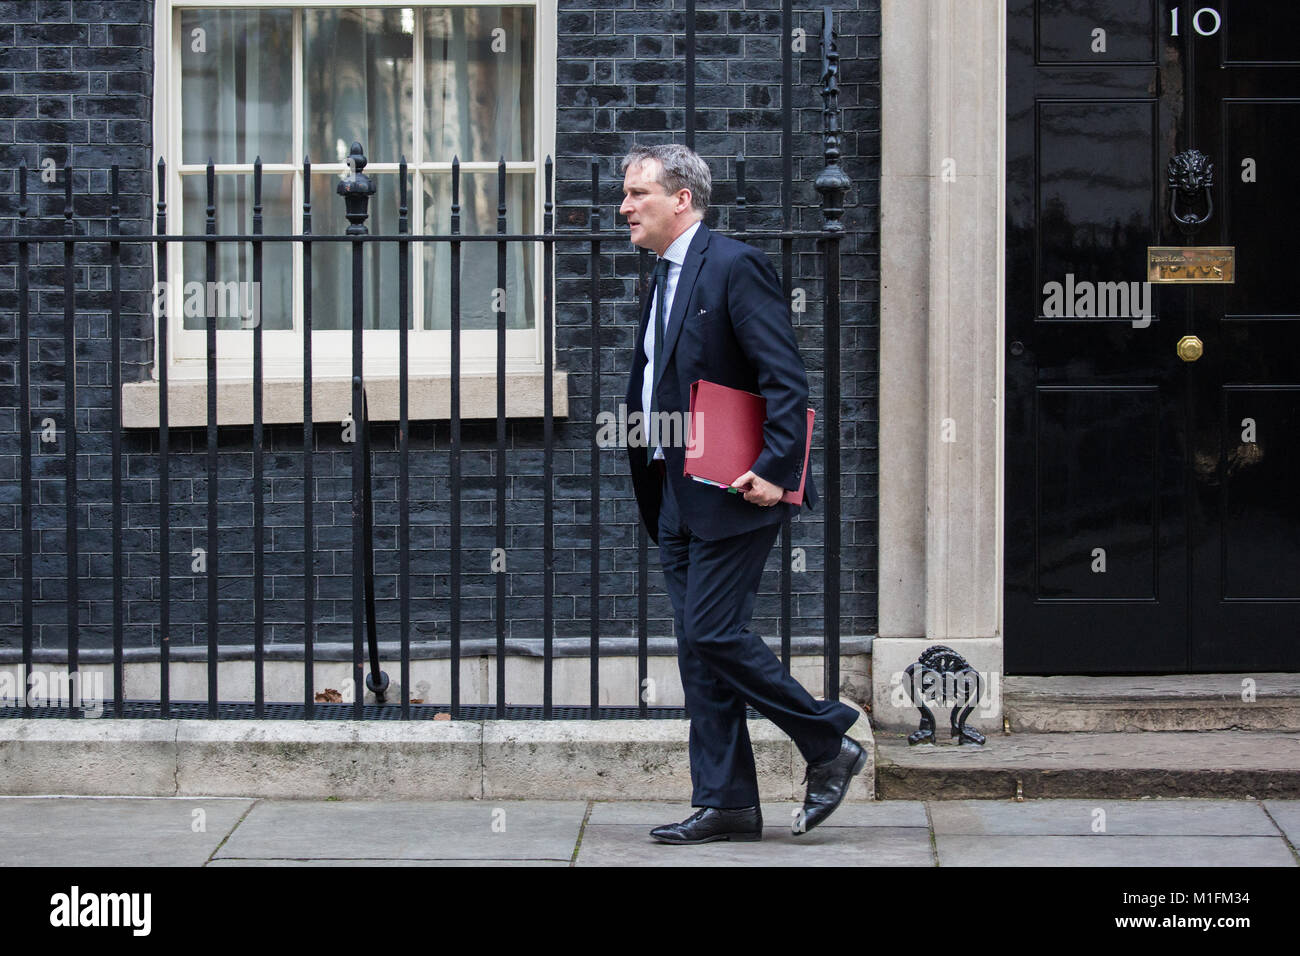 London, UK. 30th January, 2018. Damian Hinds MP, Secretary of State for Education, leaves 10 Downing Street following - Stock Image